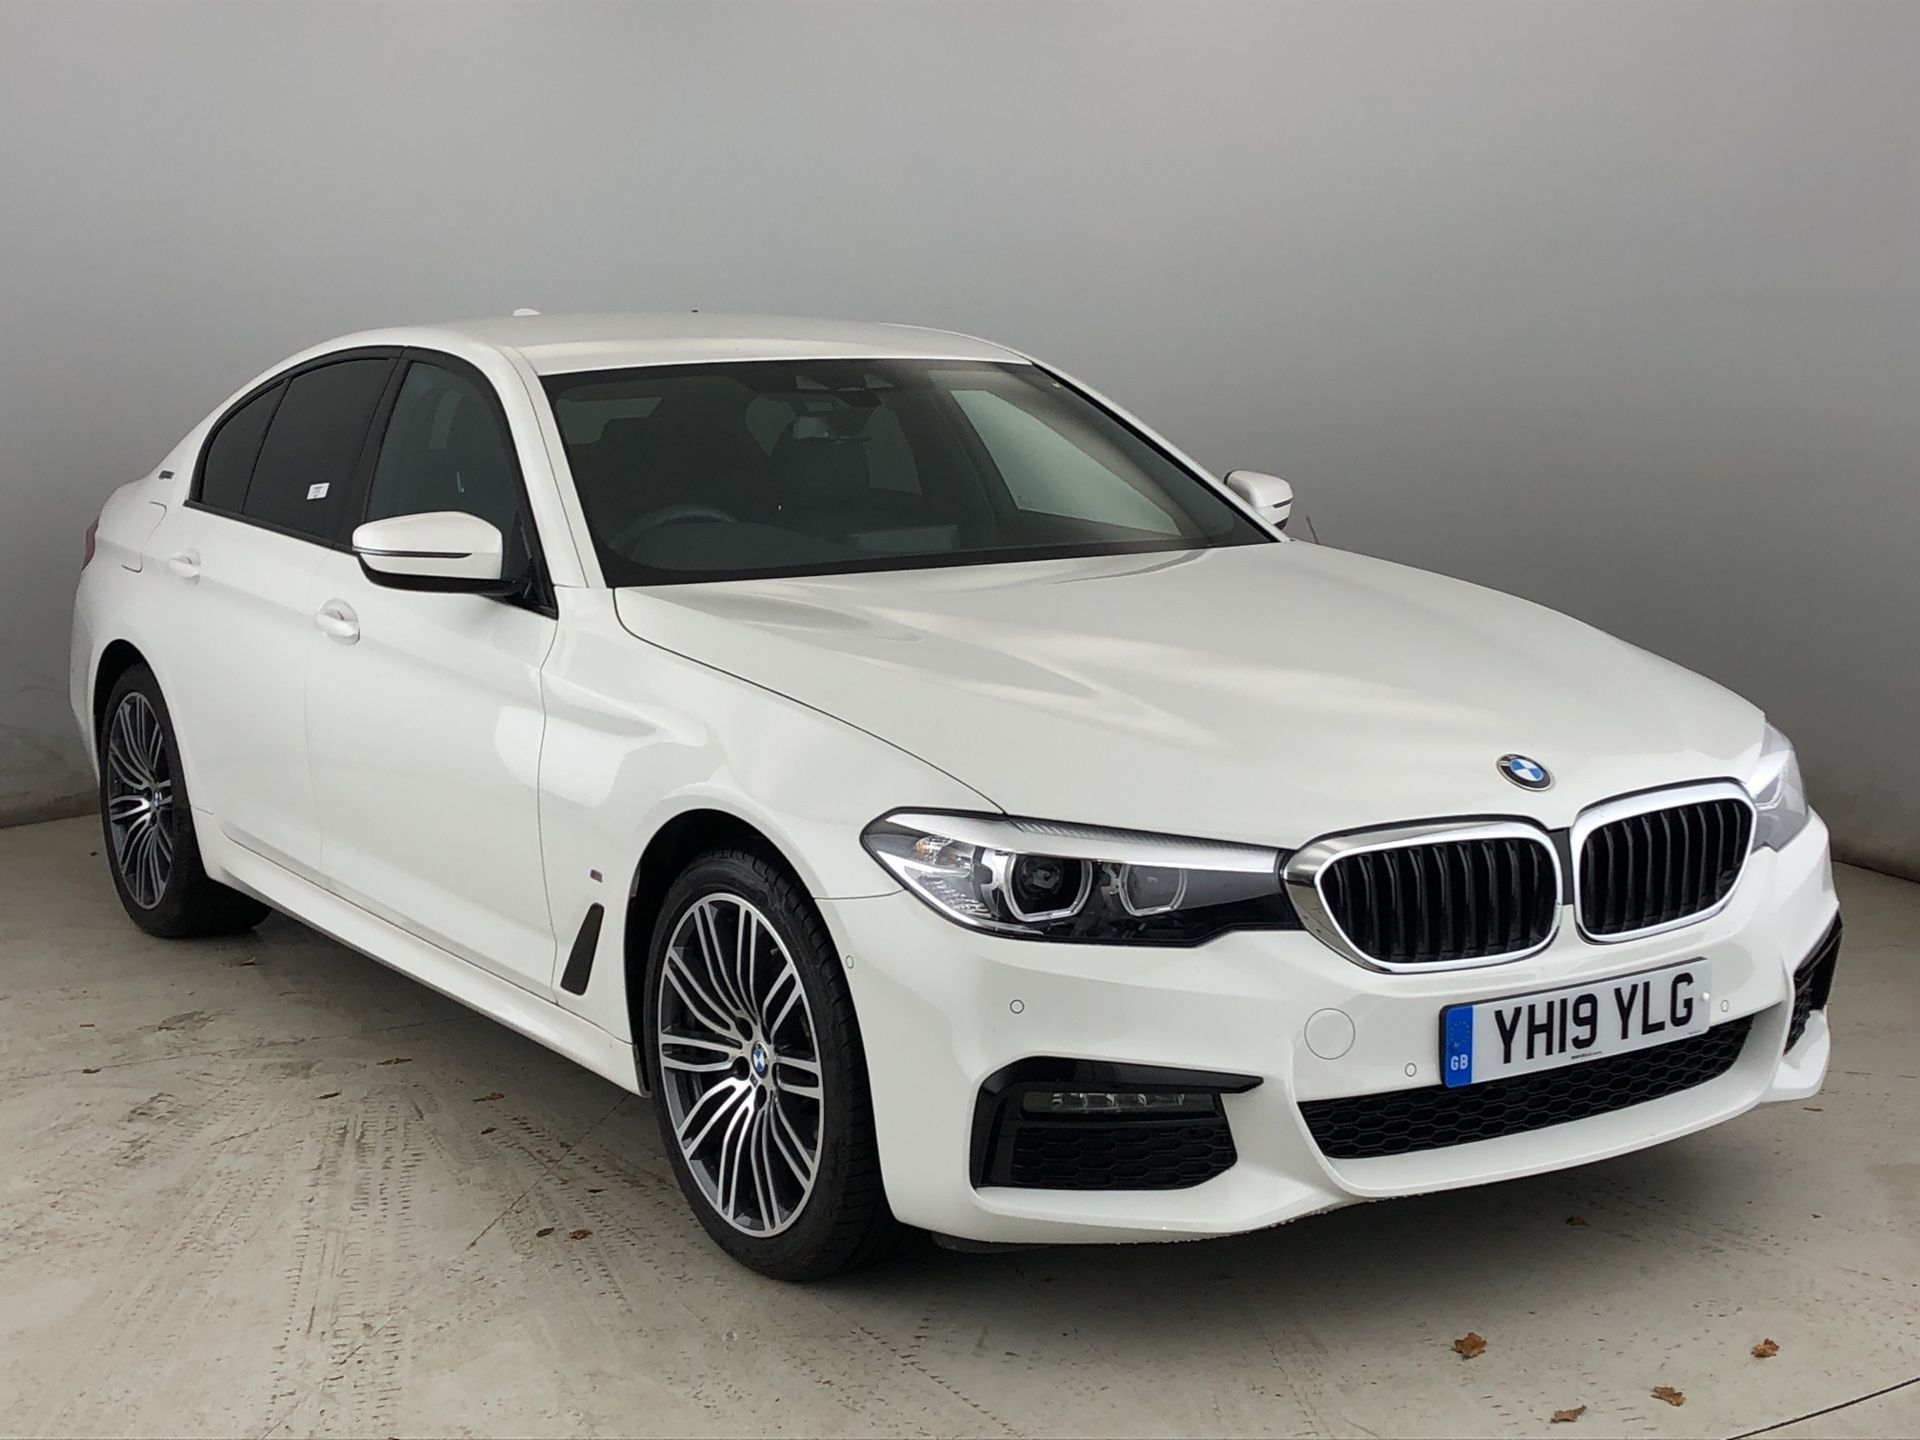 Image 1 - BMW 530e M Sport iPerformance Saloon (YH19YLG)